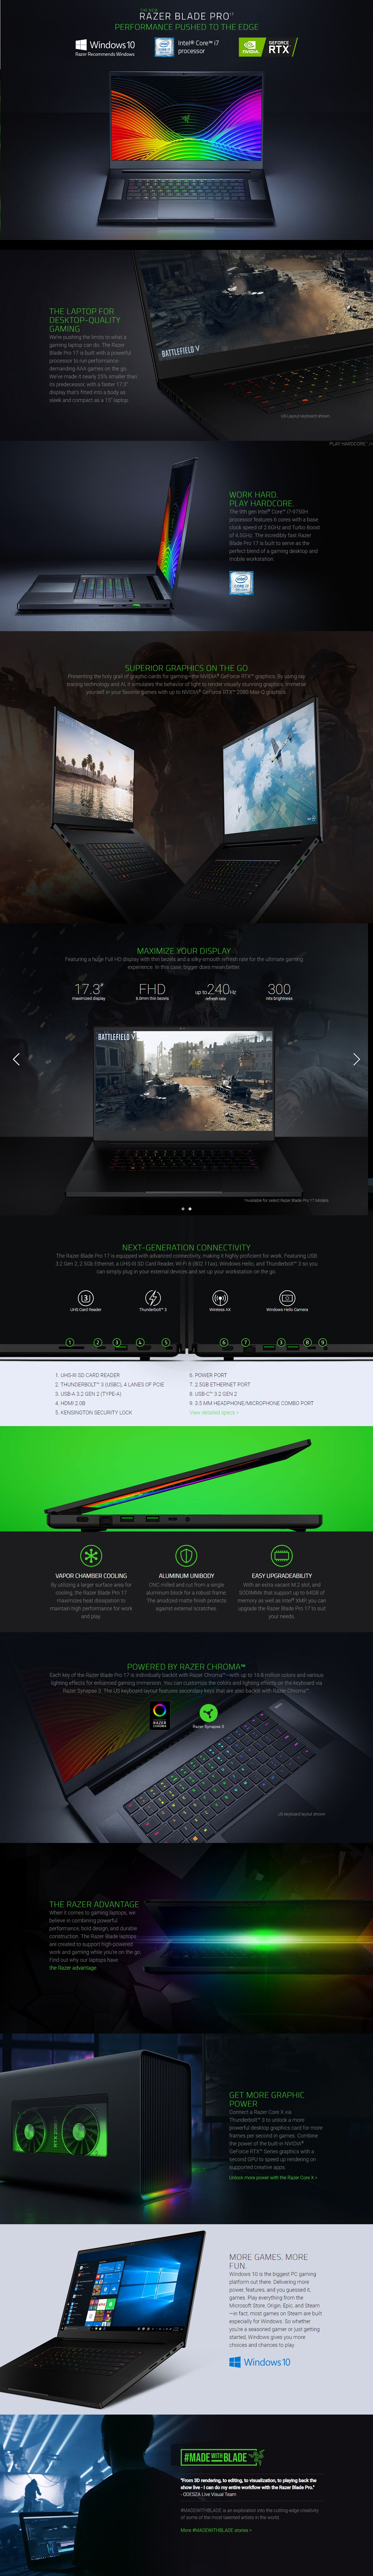 "A large marketing image providing additional information about the product Razer Blade 17 Pro 17"" i7 RTX2070 Windows 10 Gaming Notebook - Additional alt info not provided"